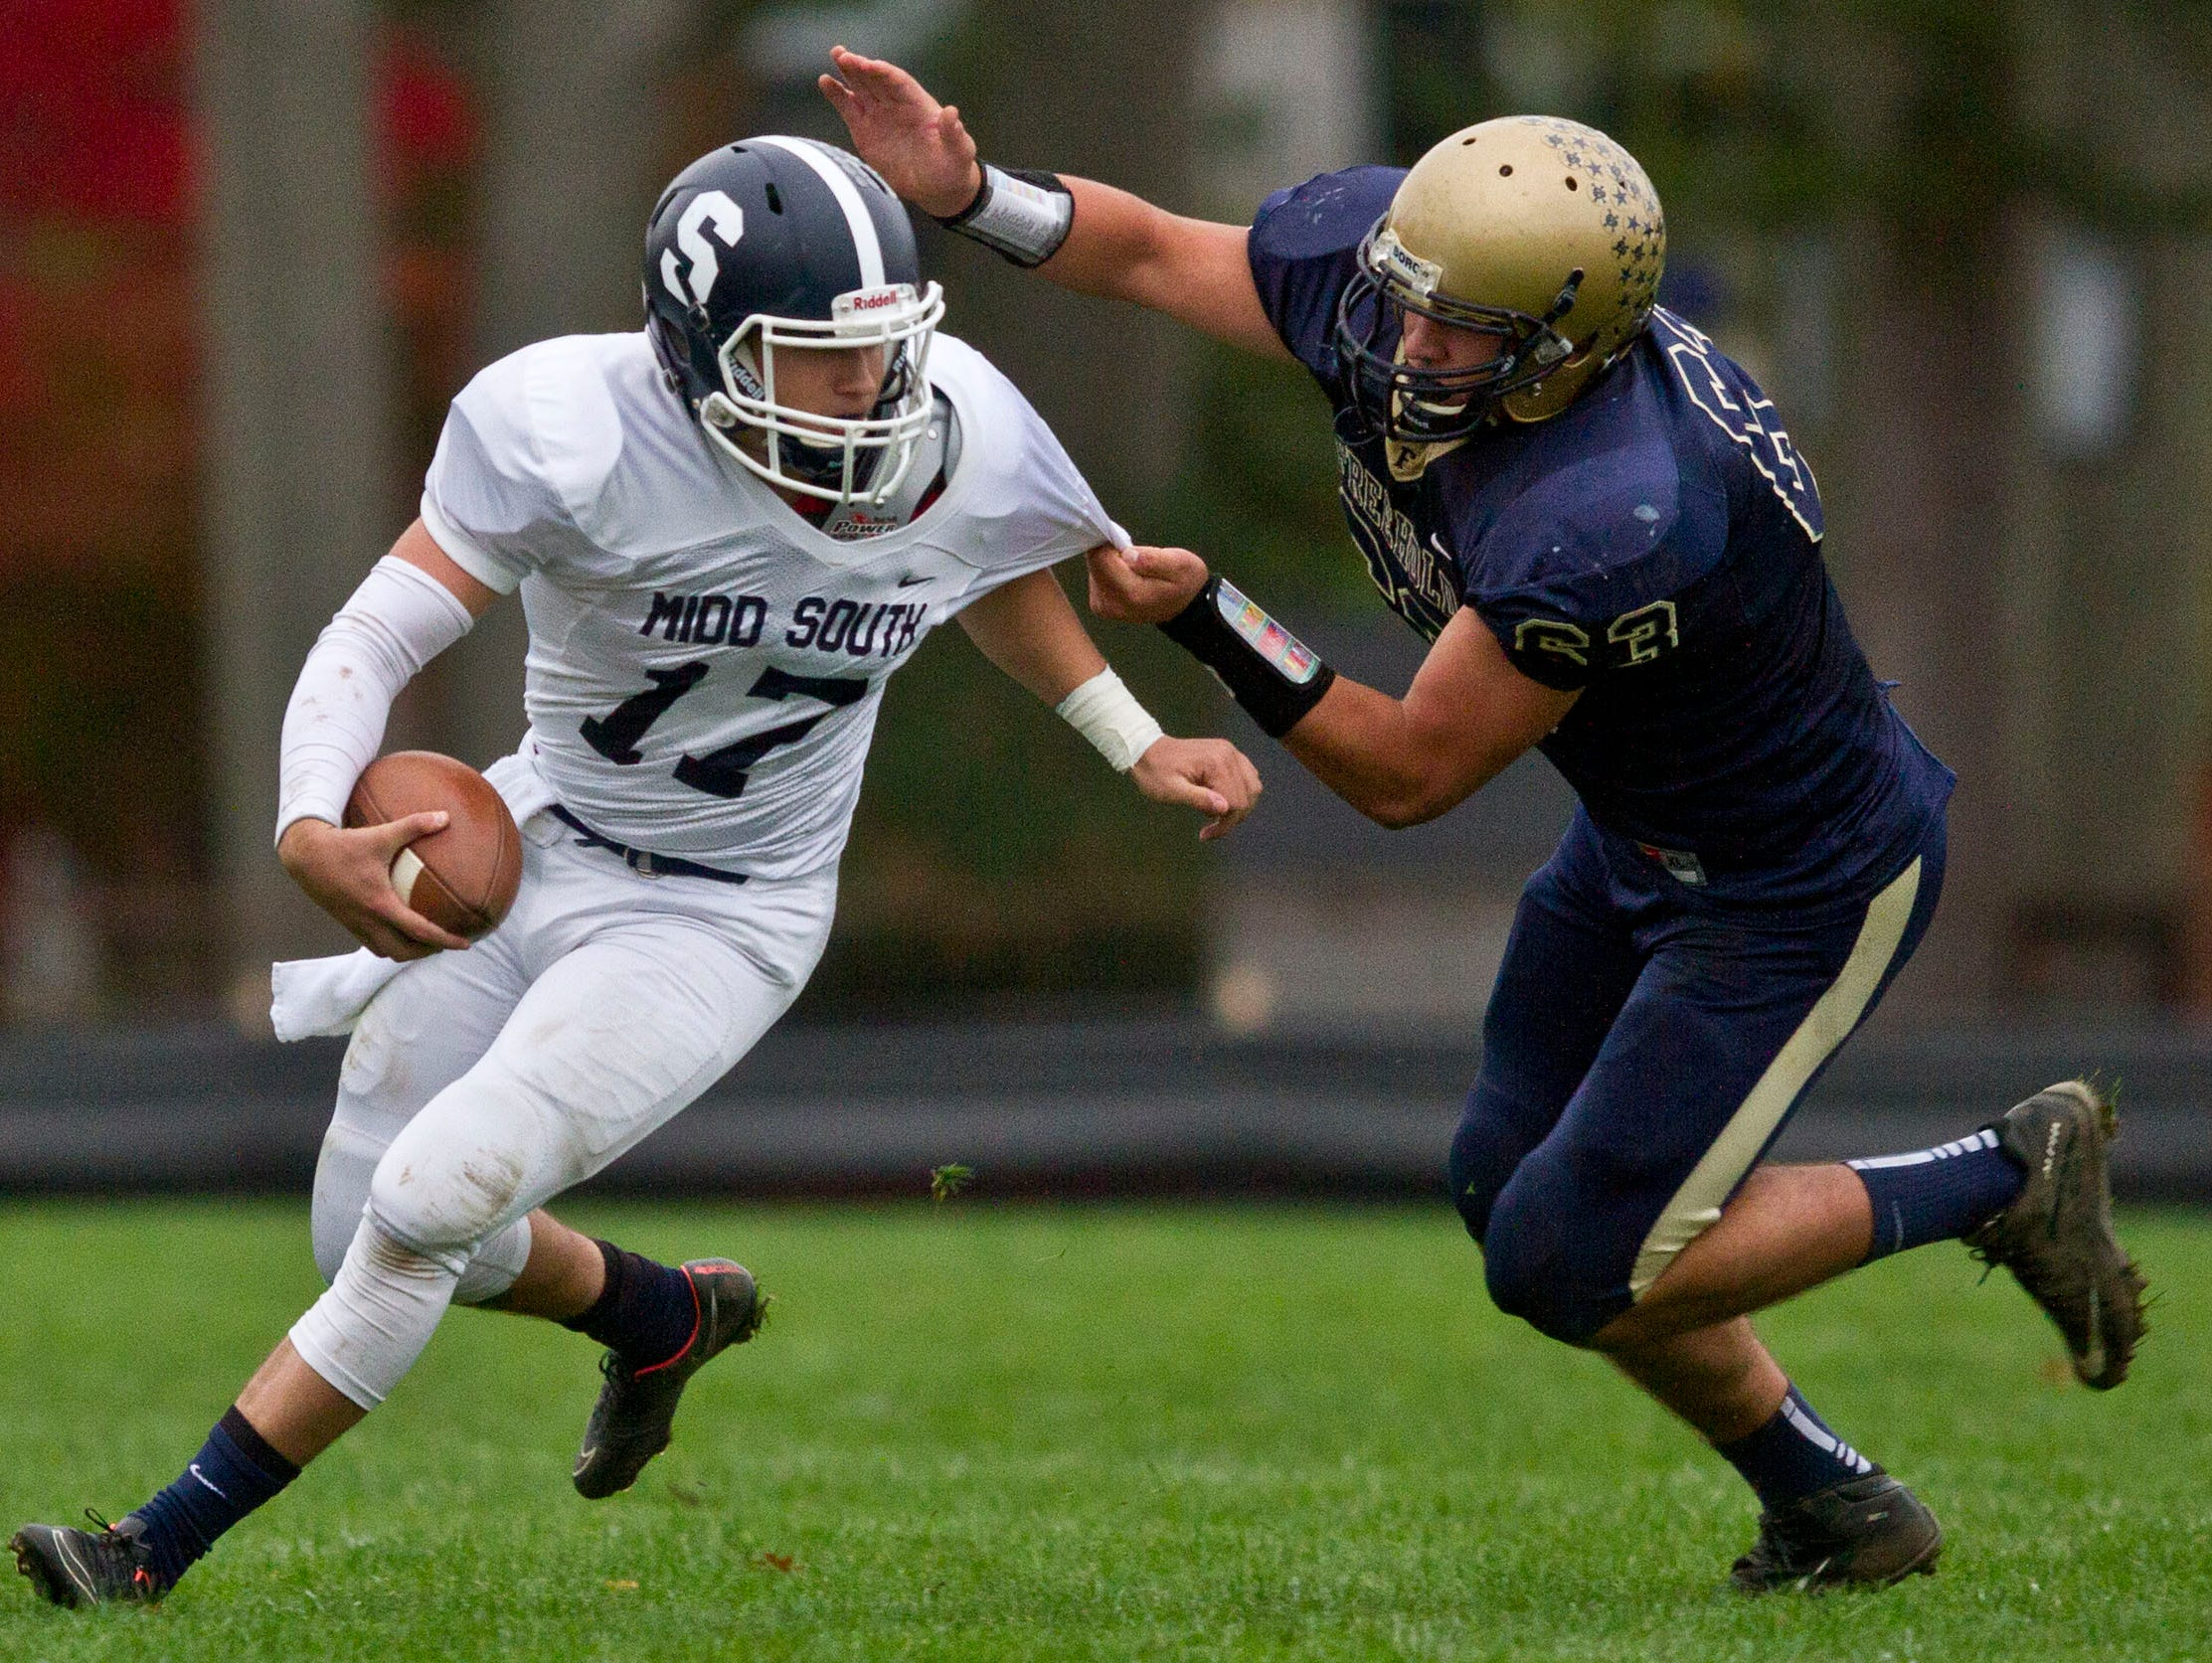 Middletown South's Matt Mosquera (17) is sacked by Freehold's Todd Burger. Middletown South at Freehold football. Freehold, NJ Saturday, November 7, 2015 @dhoodhood